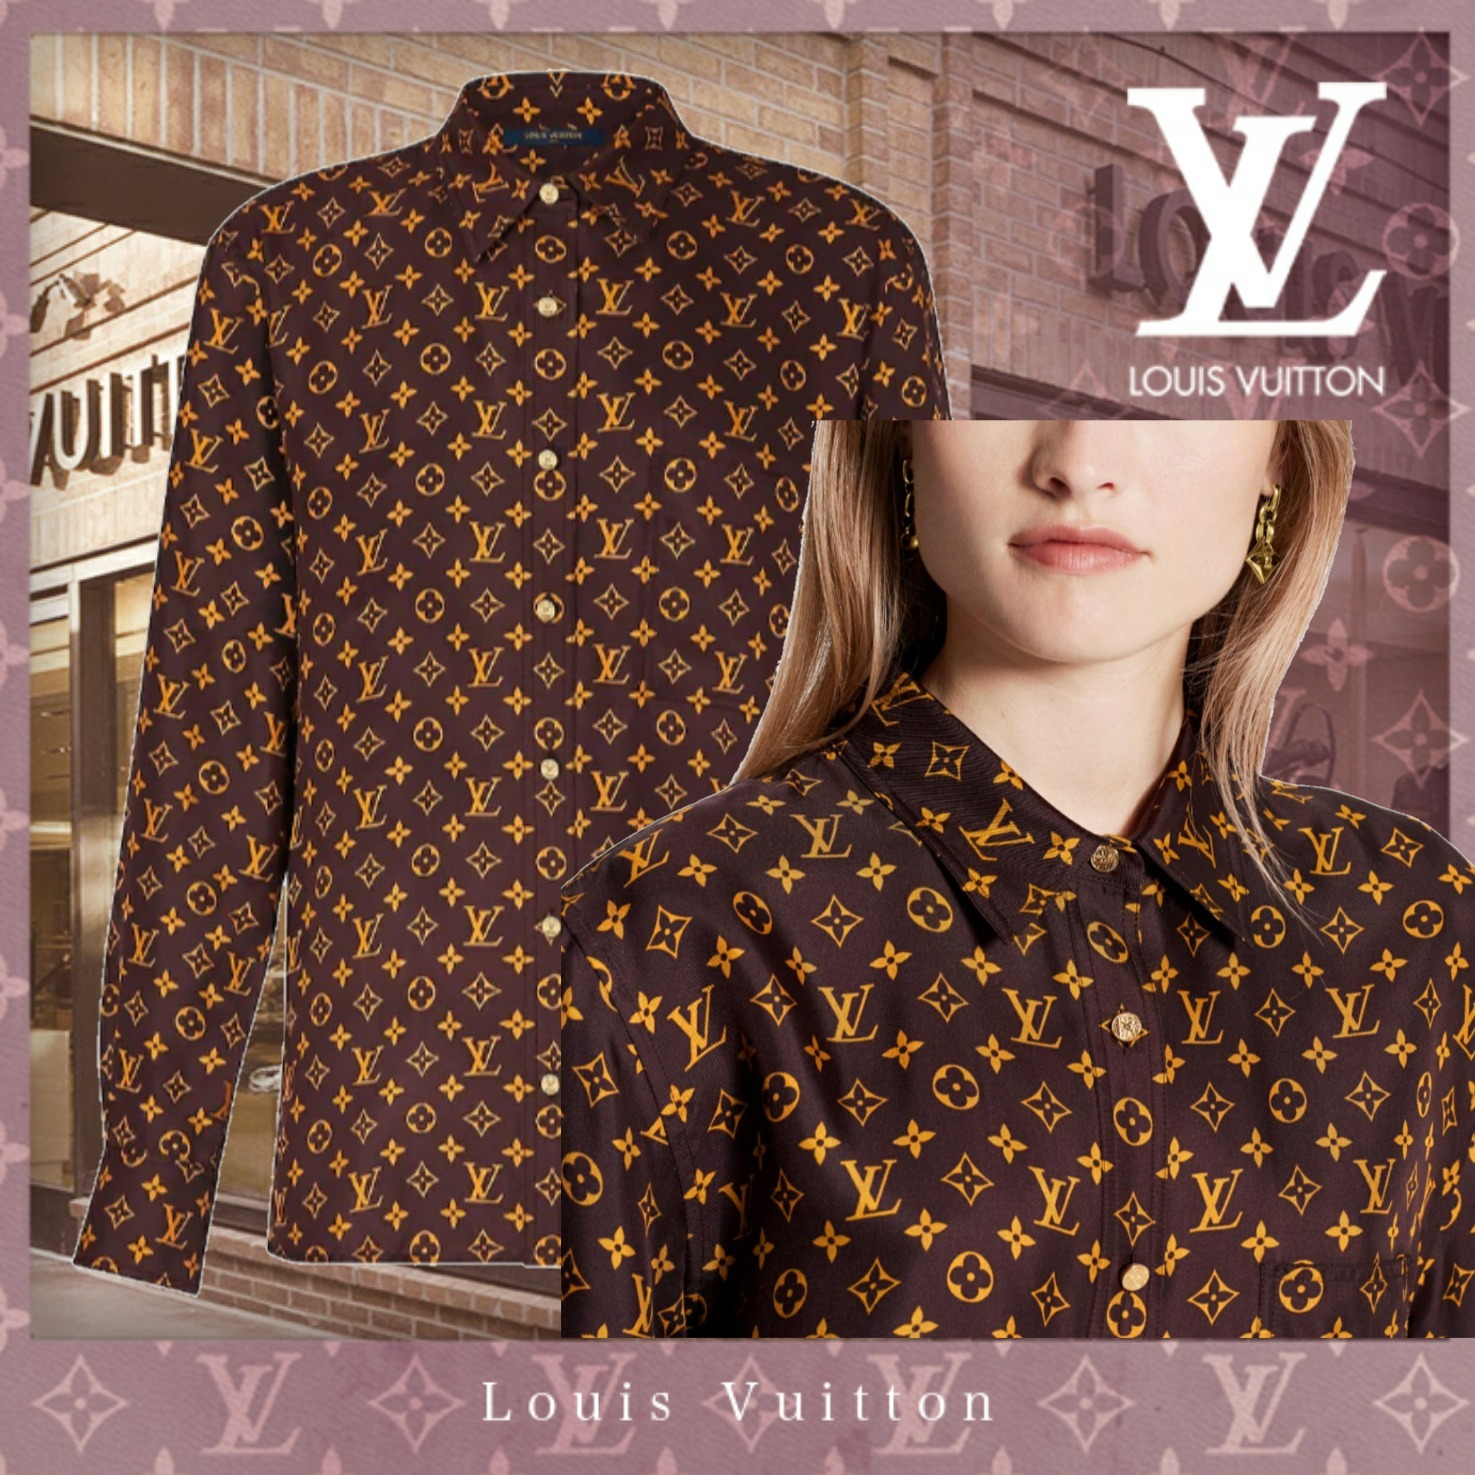 20FW 直営 Louis Vuitton モノグラムツイルロングスリーブシャツ (Louis Vuitton/ブラウス・シャツ) 1A8BSN  1A8BSO  1A8BSP